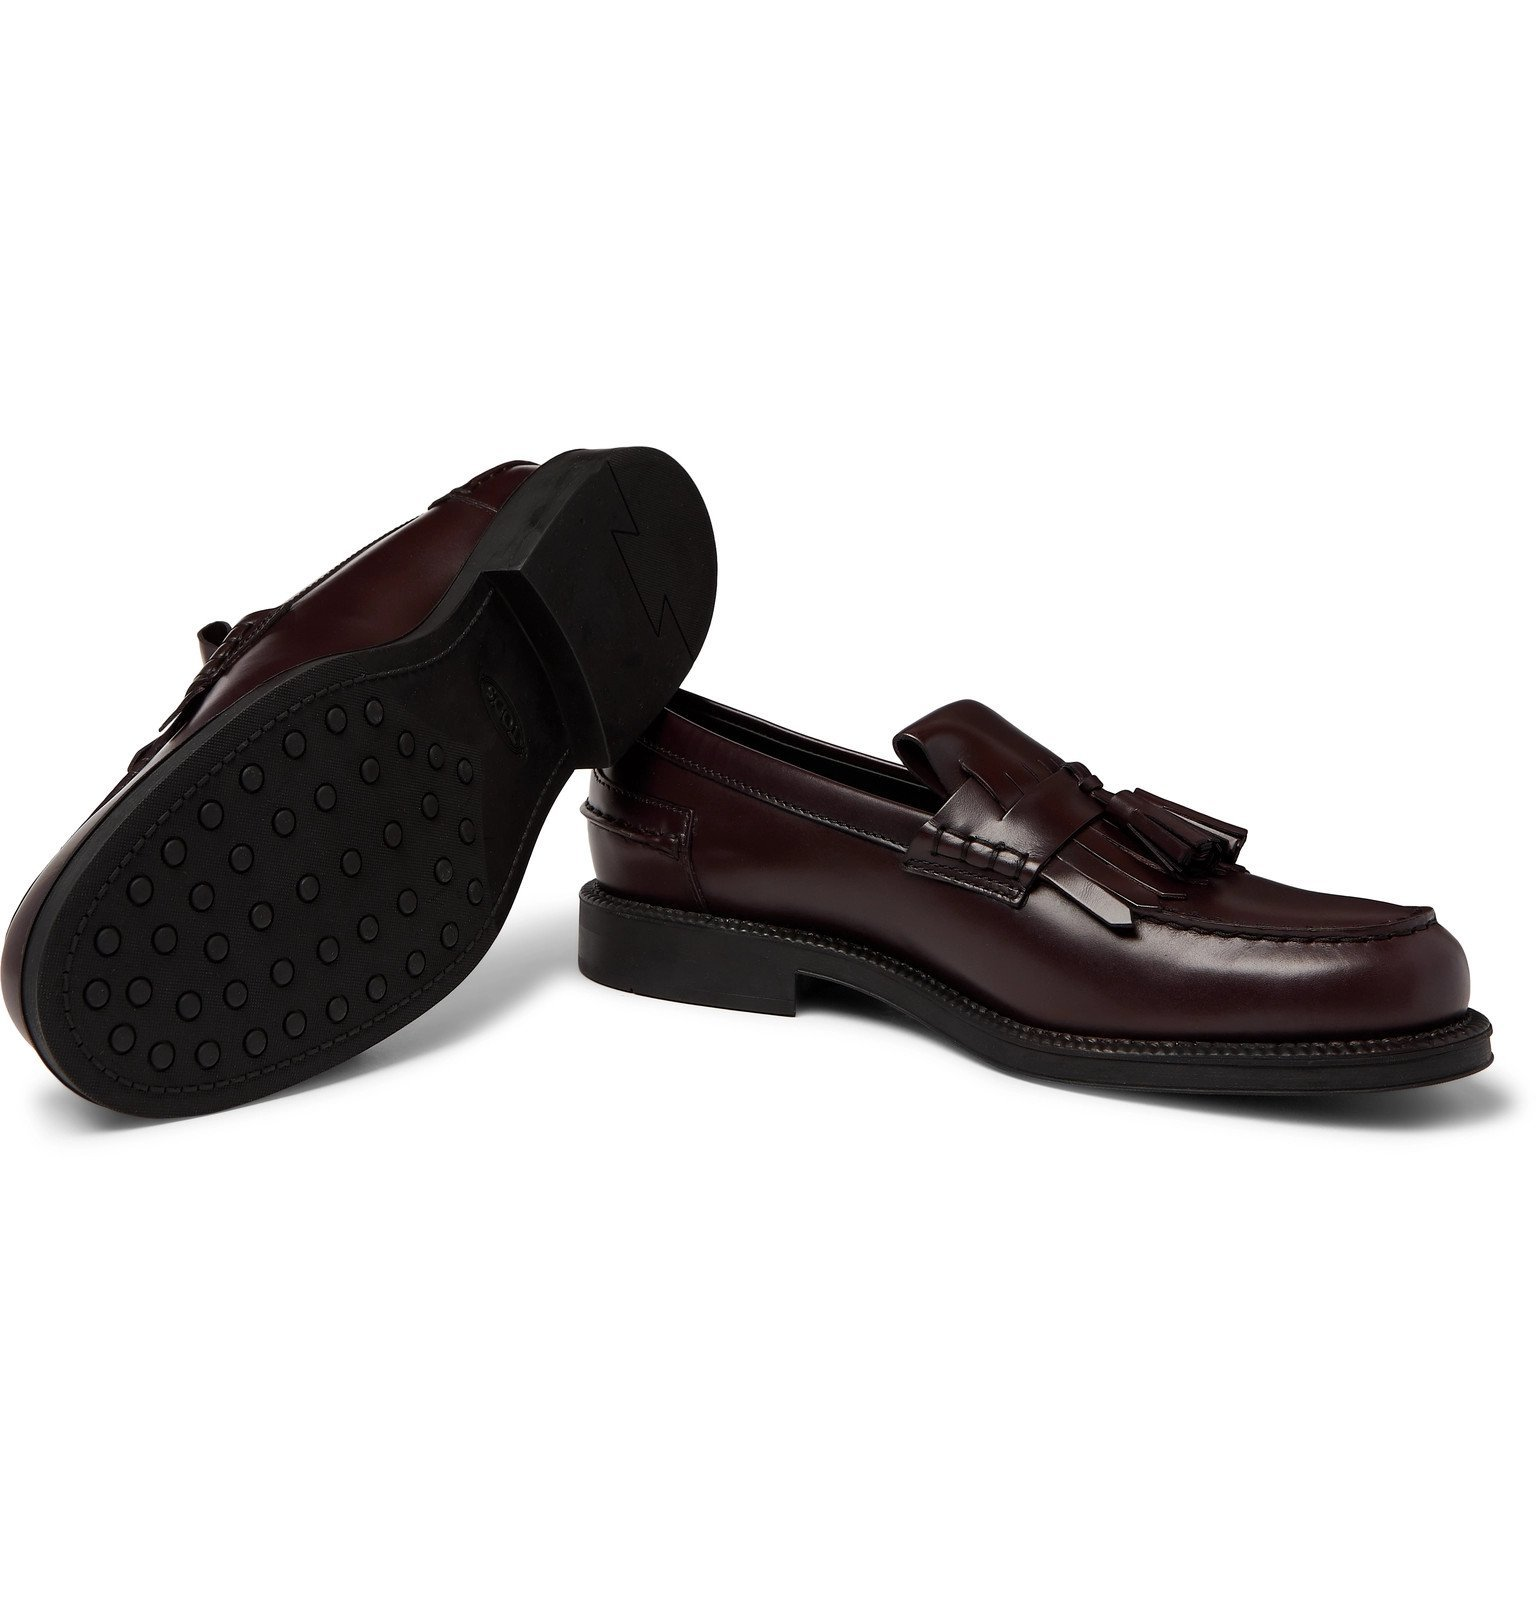 Tod's - Leather Tasselled Loafers - Burgundy